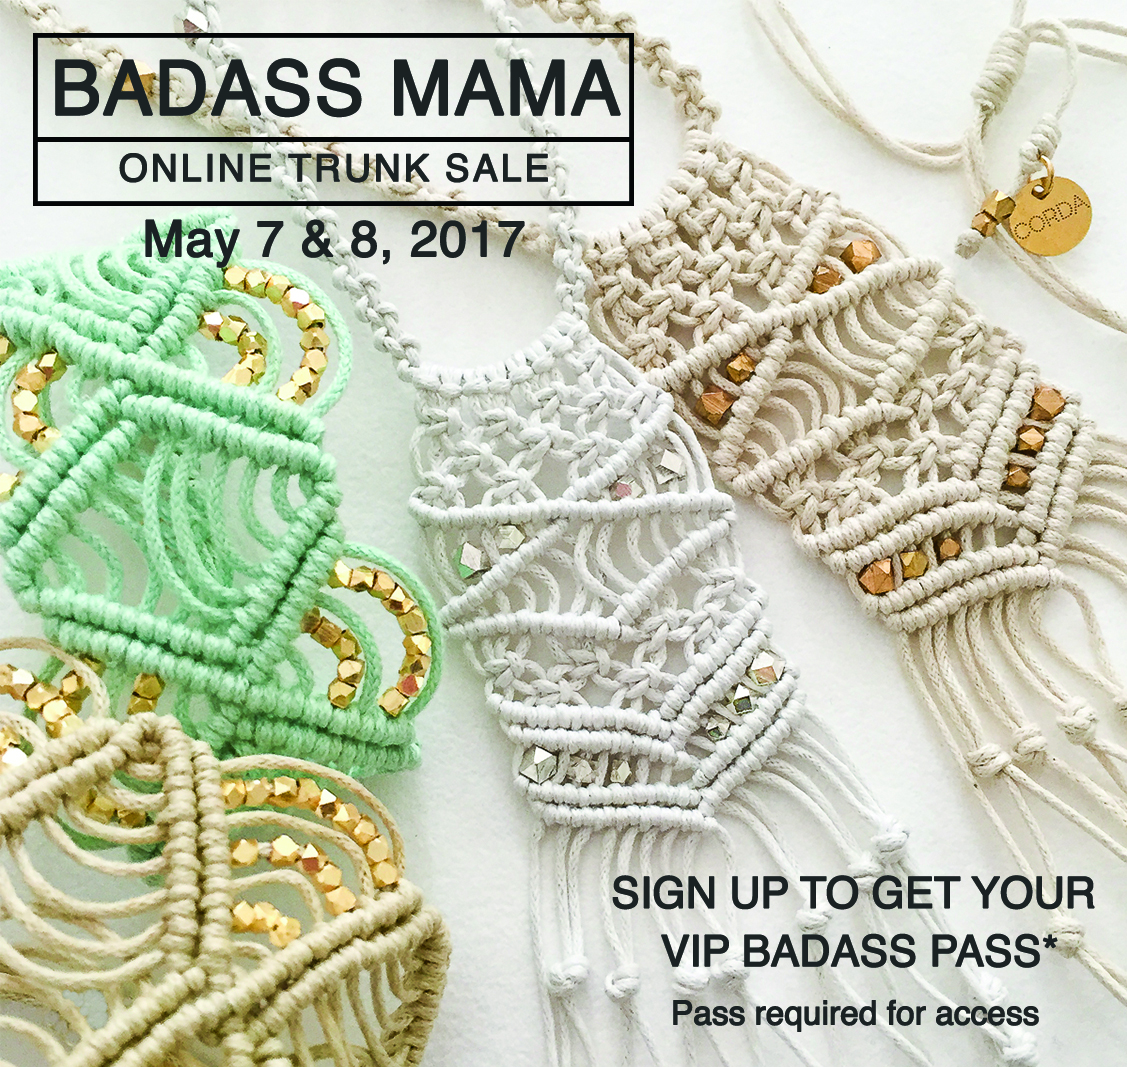 BADASS-MAMA-TRUNK-SALE